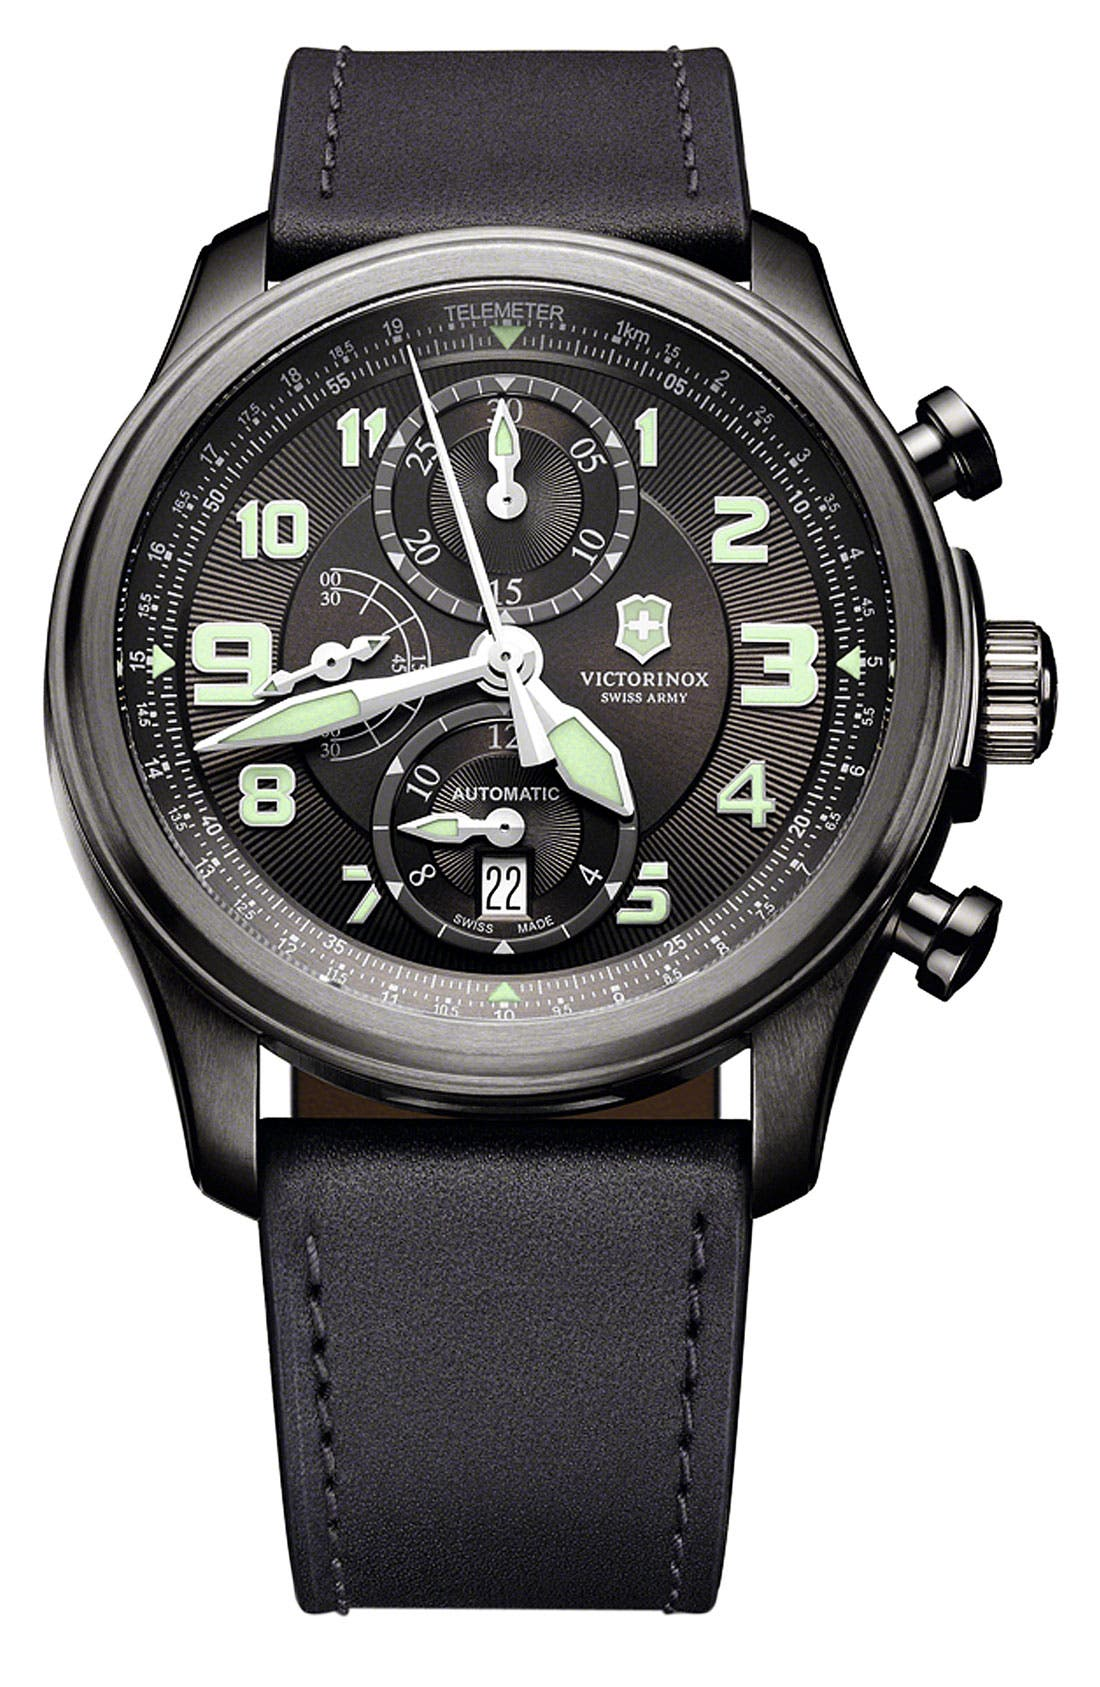 Alternate Image 1 Selected - Victorinox Swiss Army® 'Infantry Vintage' Automatic Chronograph Watch